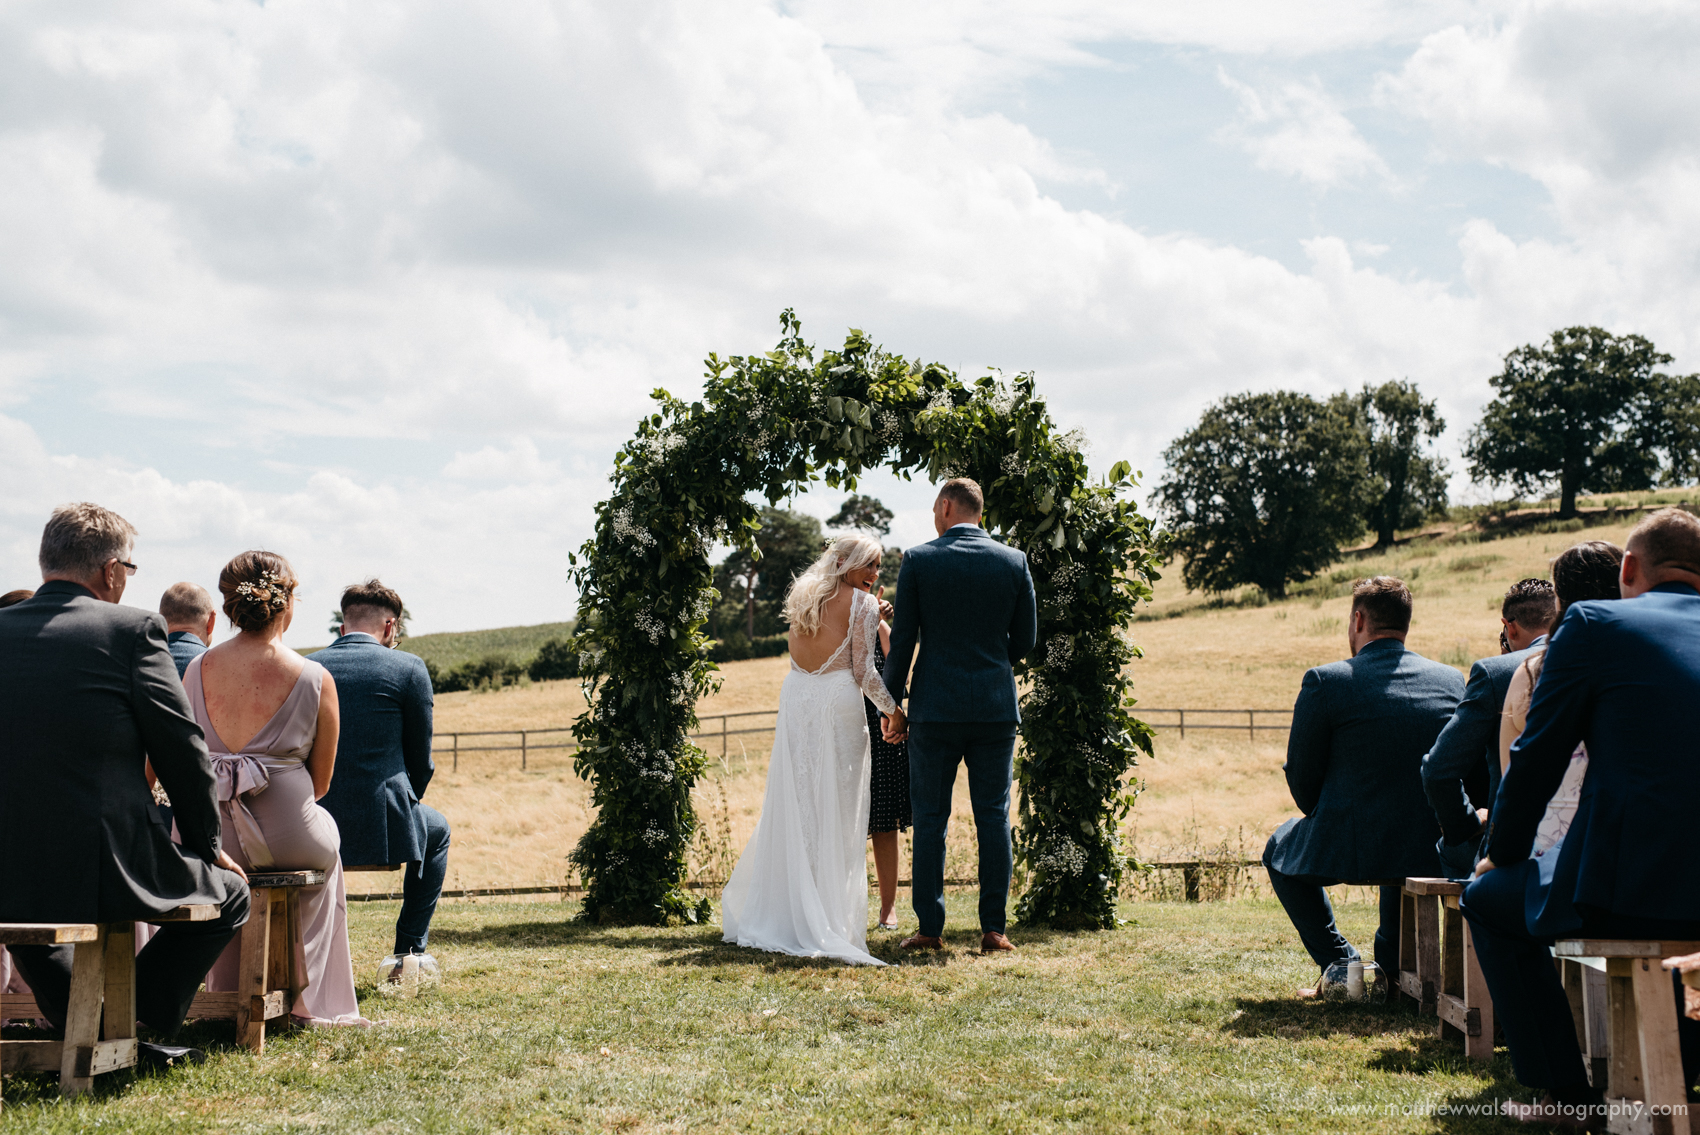 Making their vows under a floral arch that they have made themselves